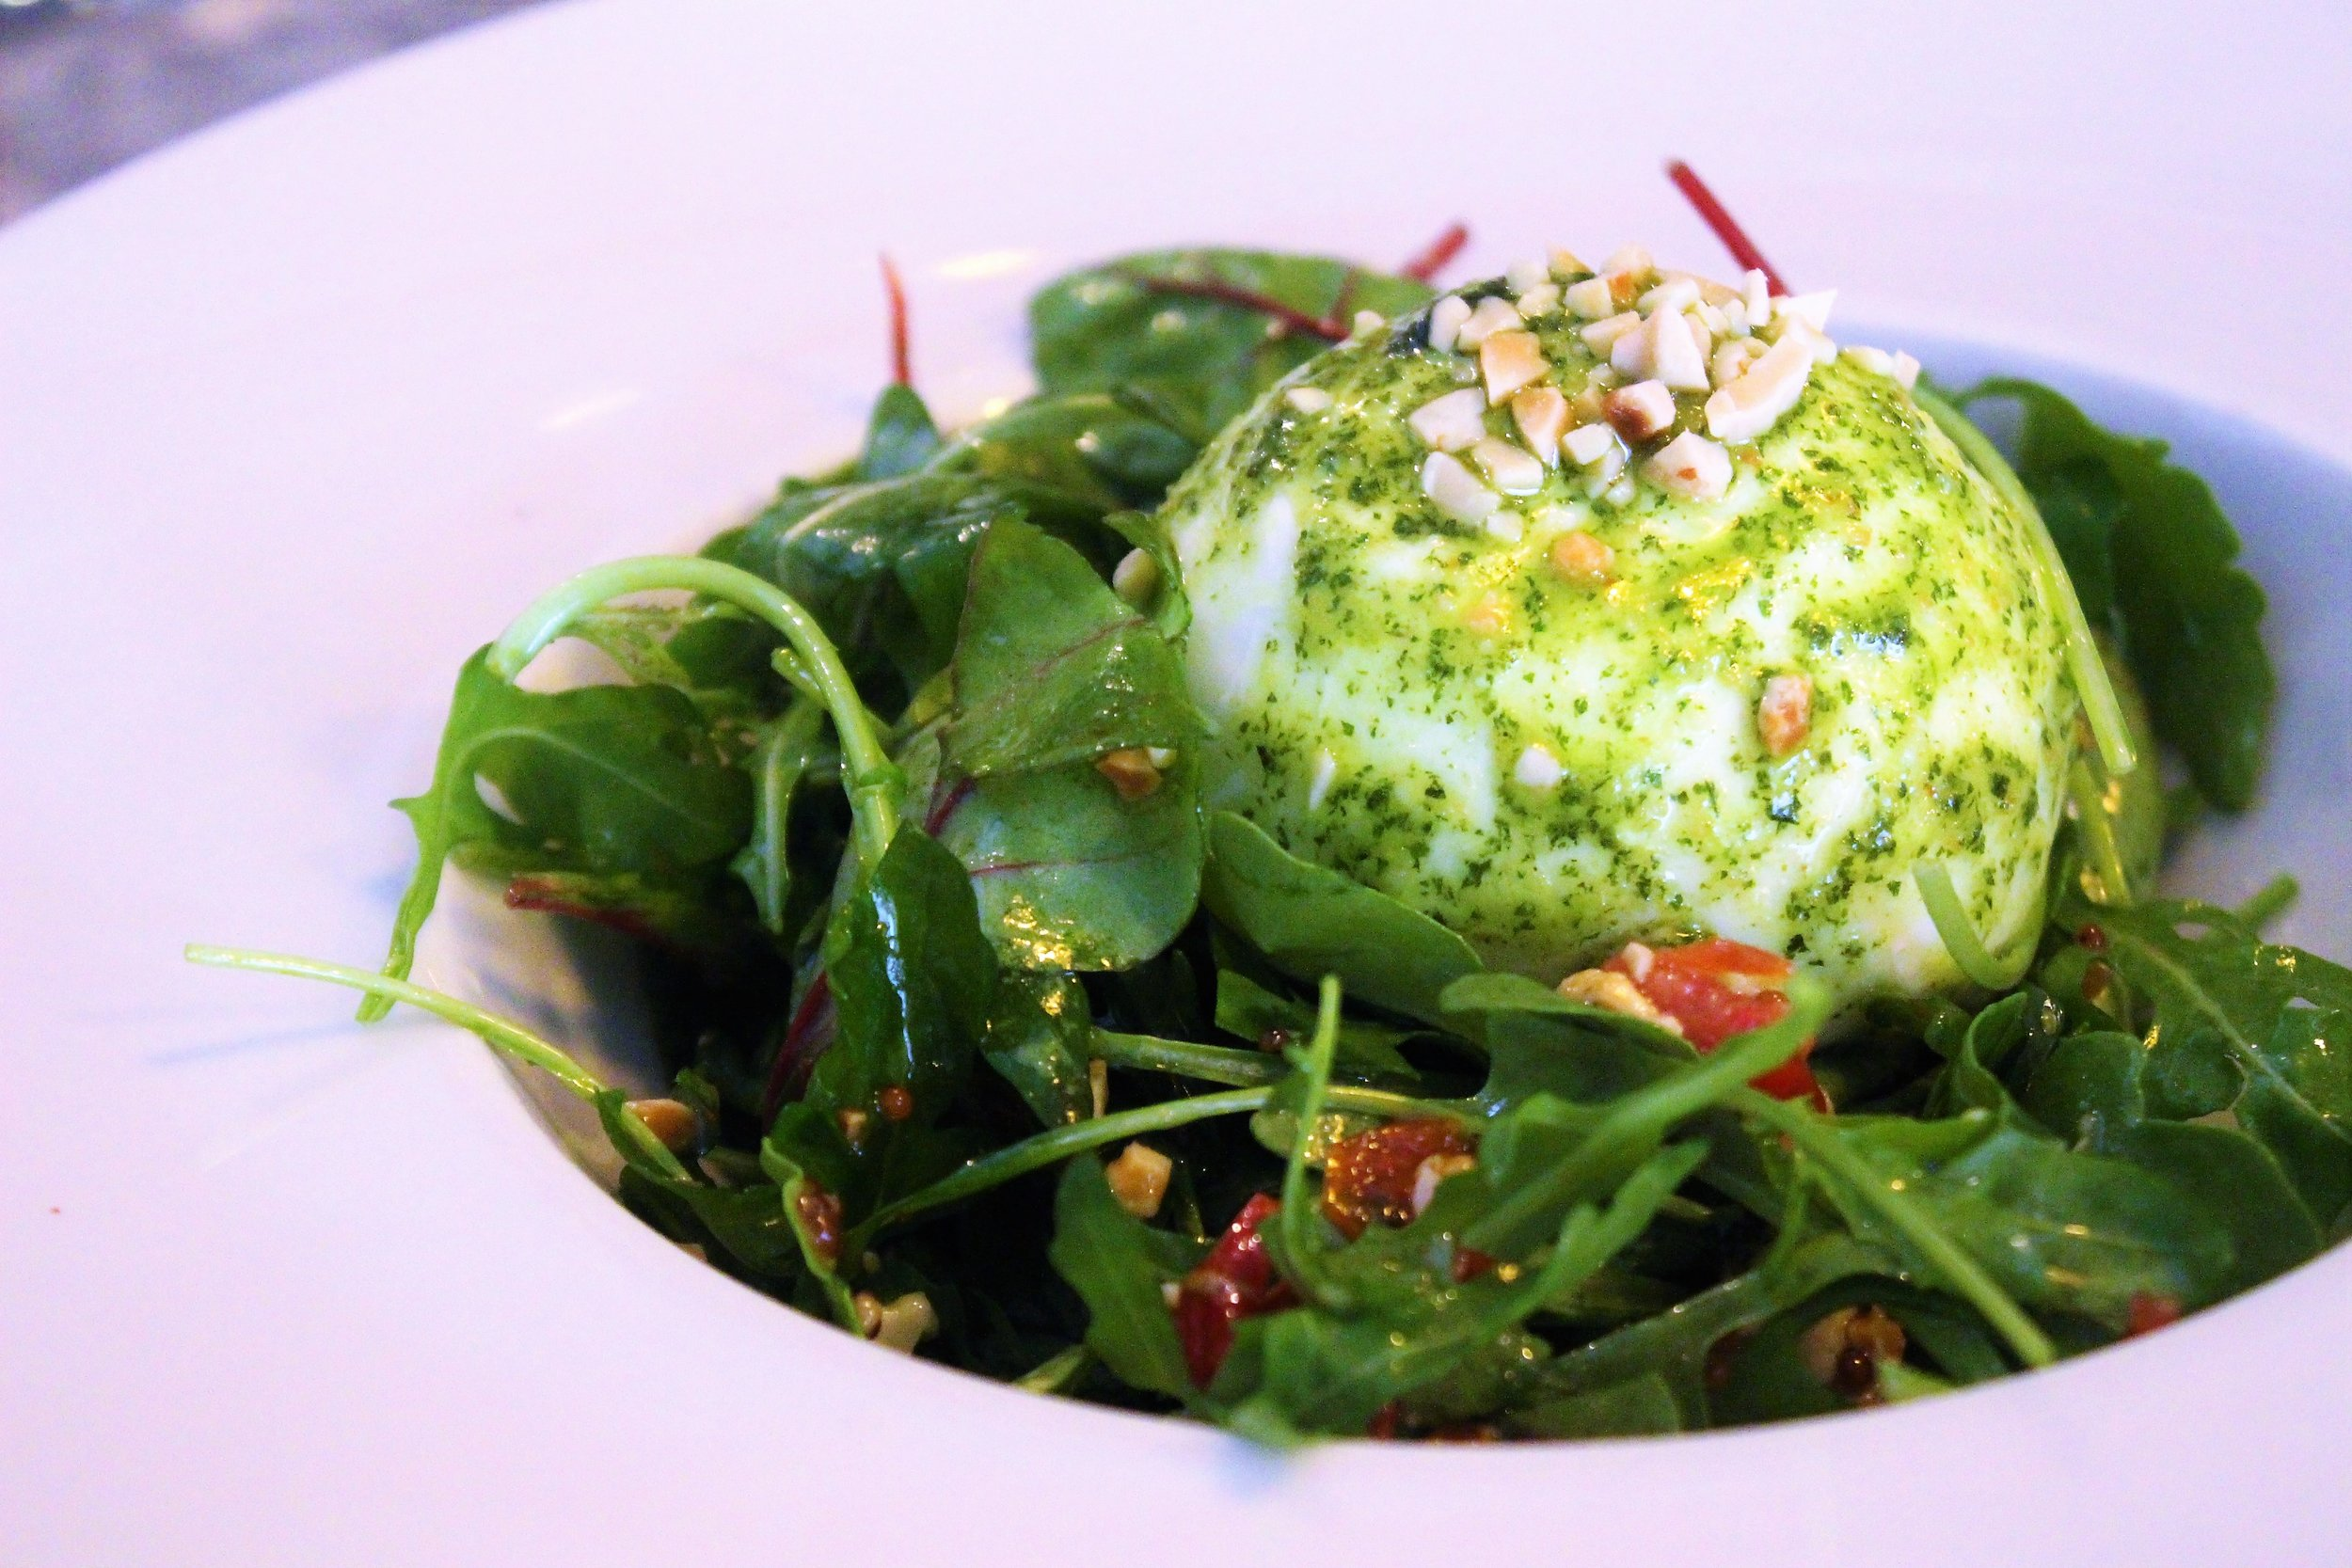 Buffalo Burrata, Arugula, Sun-Dried Tomatoes, Nuts, and Basil Pesto at Cera 23 in Barcelona